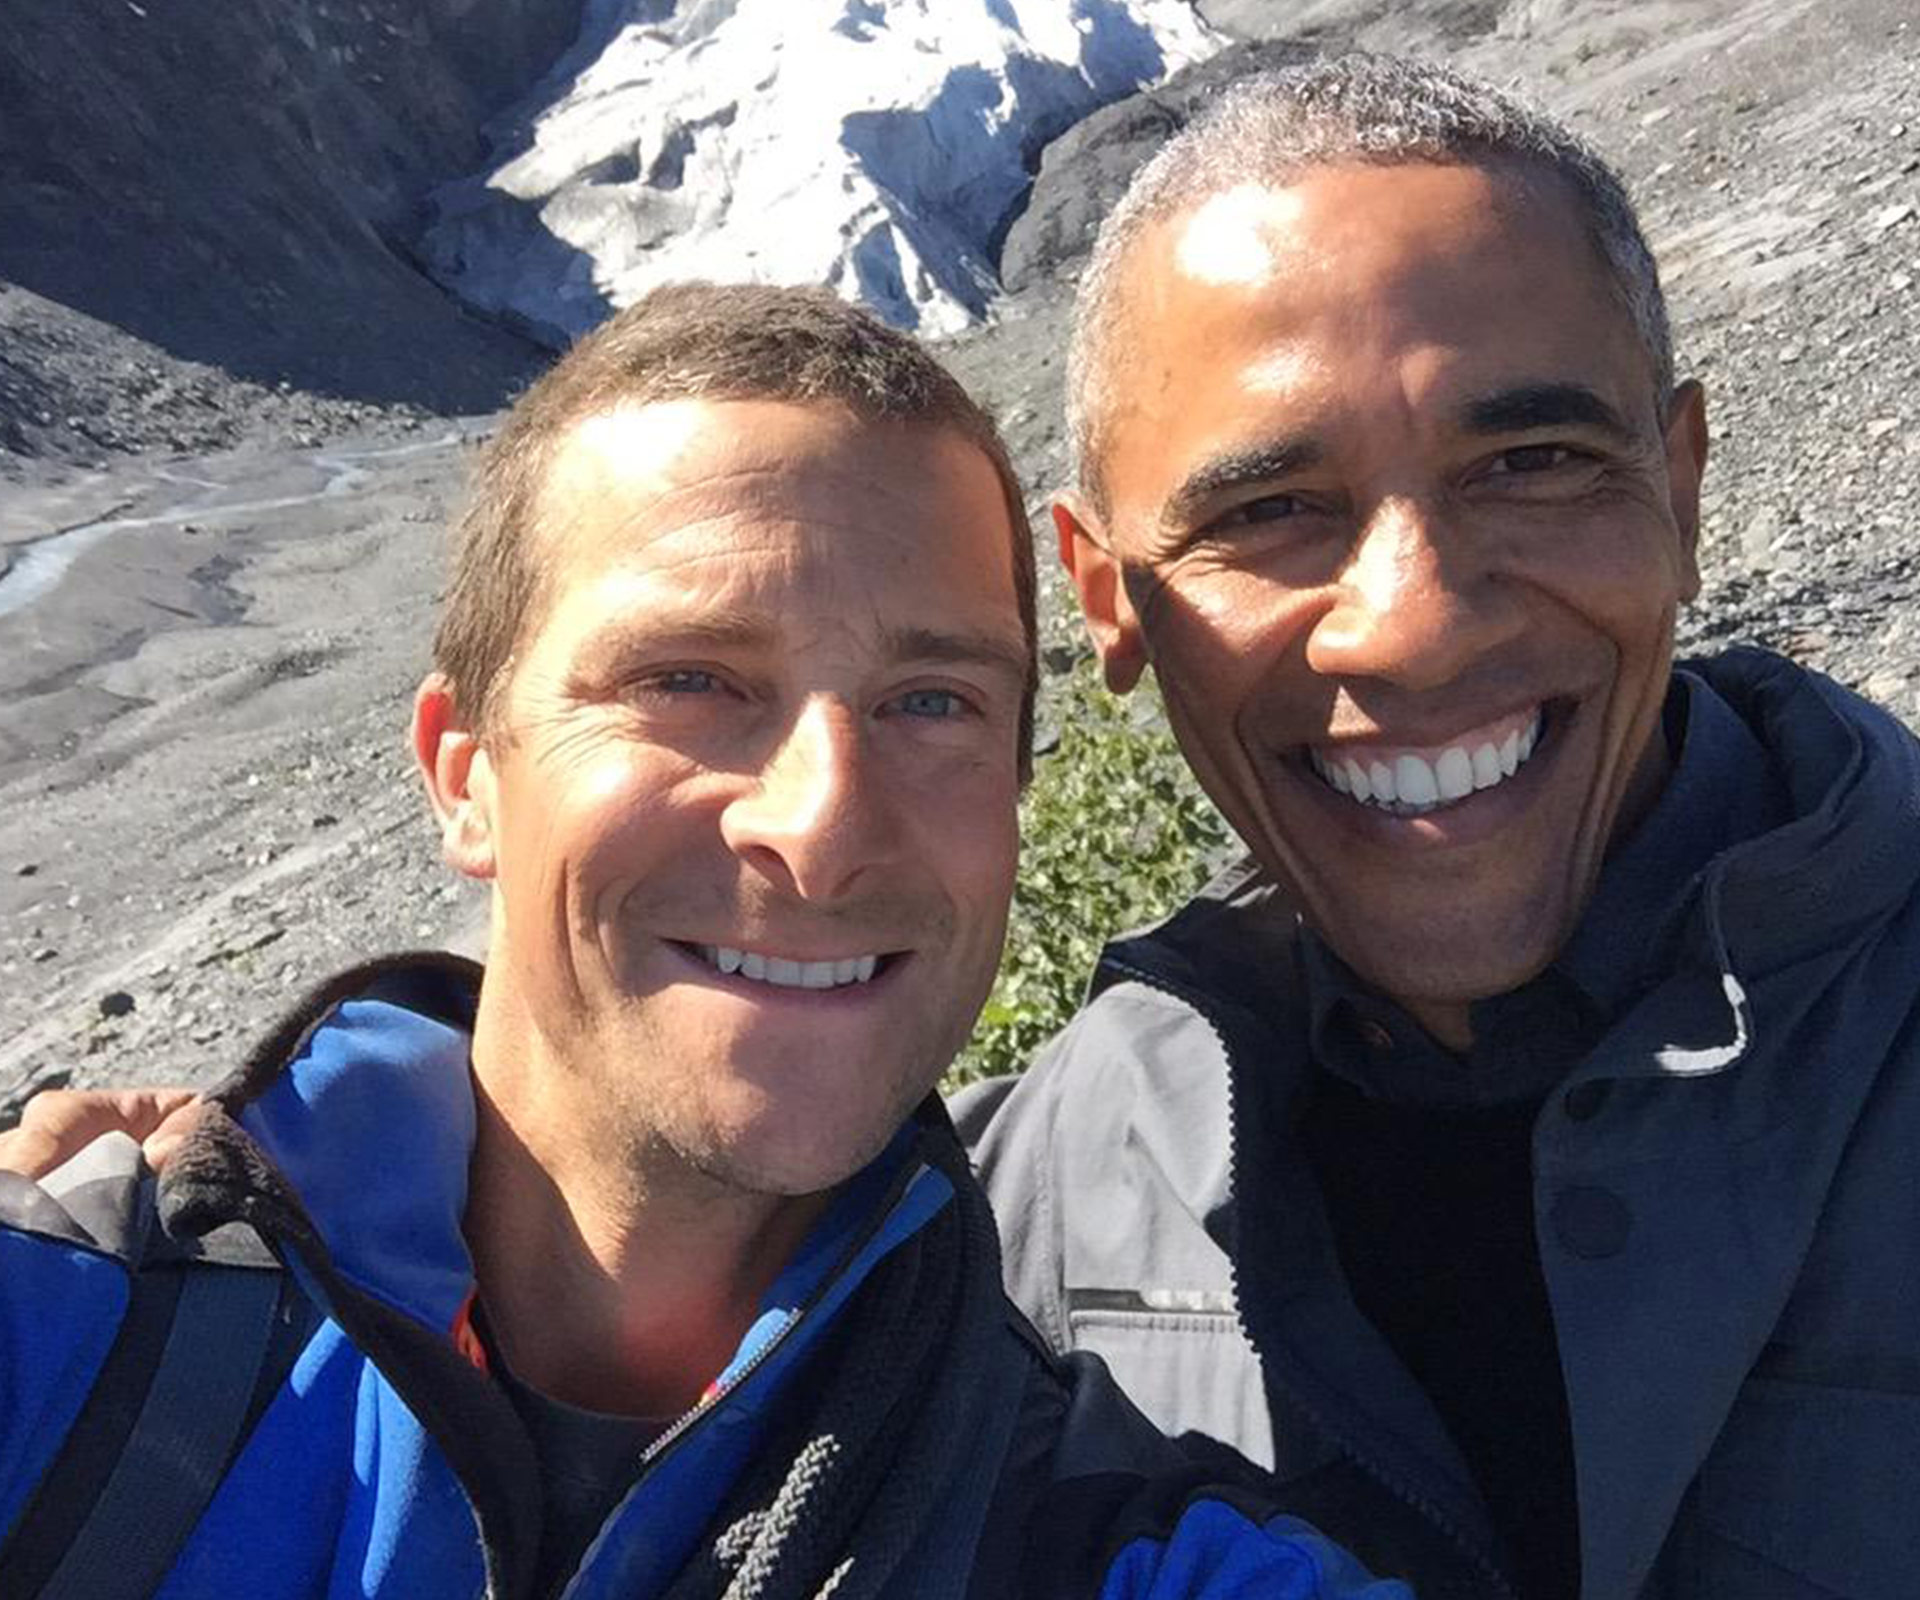 Bear Grylls reveals his Barack Obama 'survival mission' was a walk in the park — with laid-on presidential loos